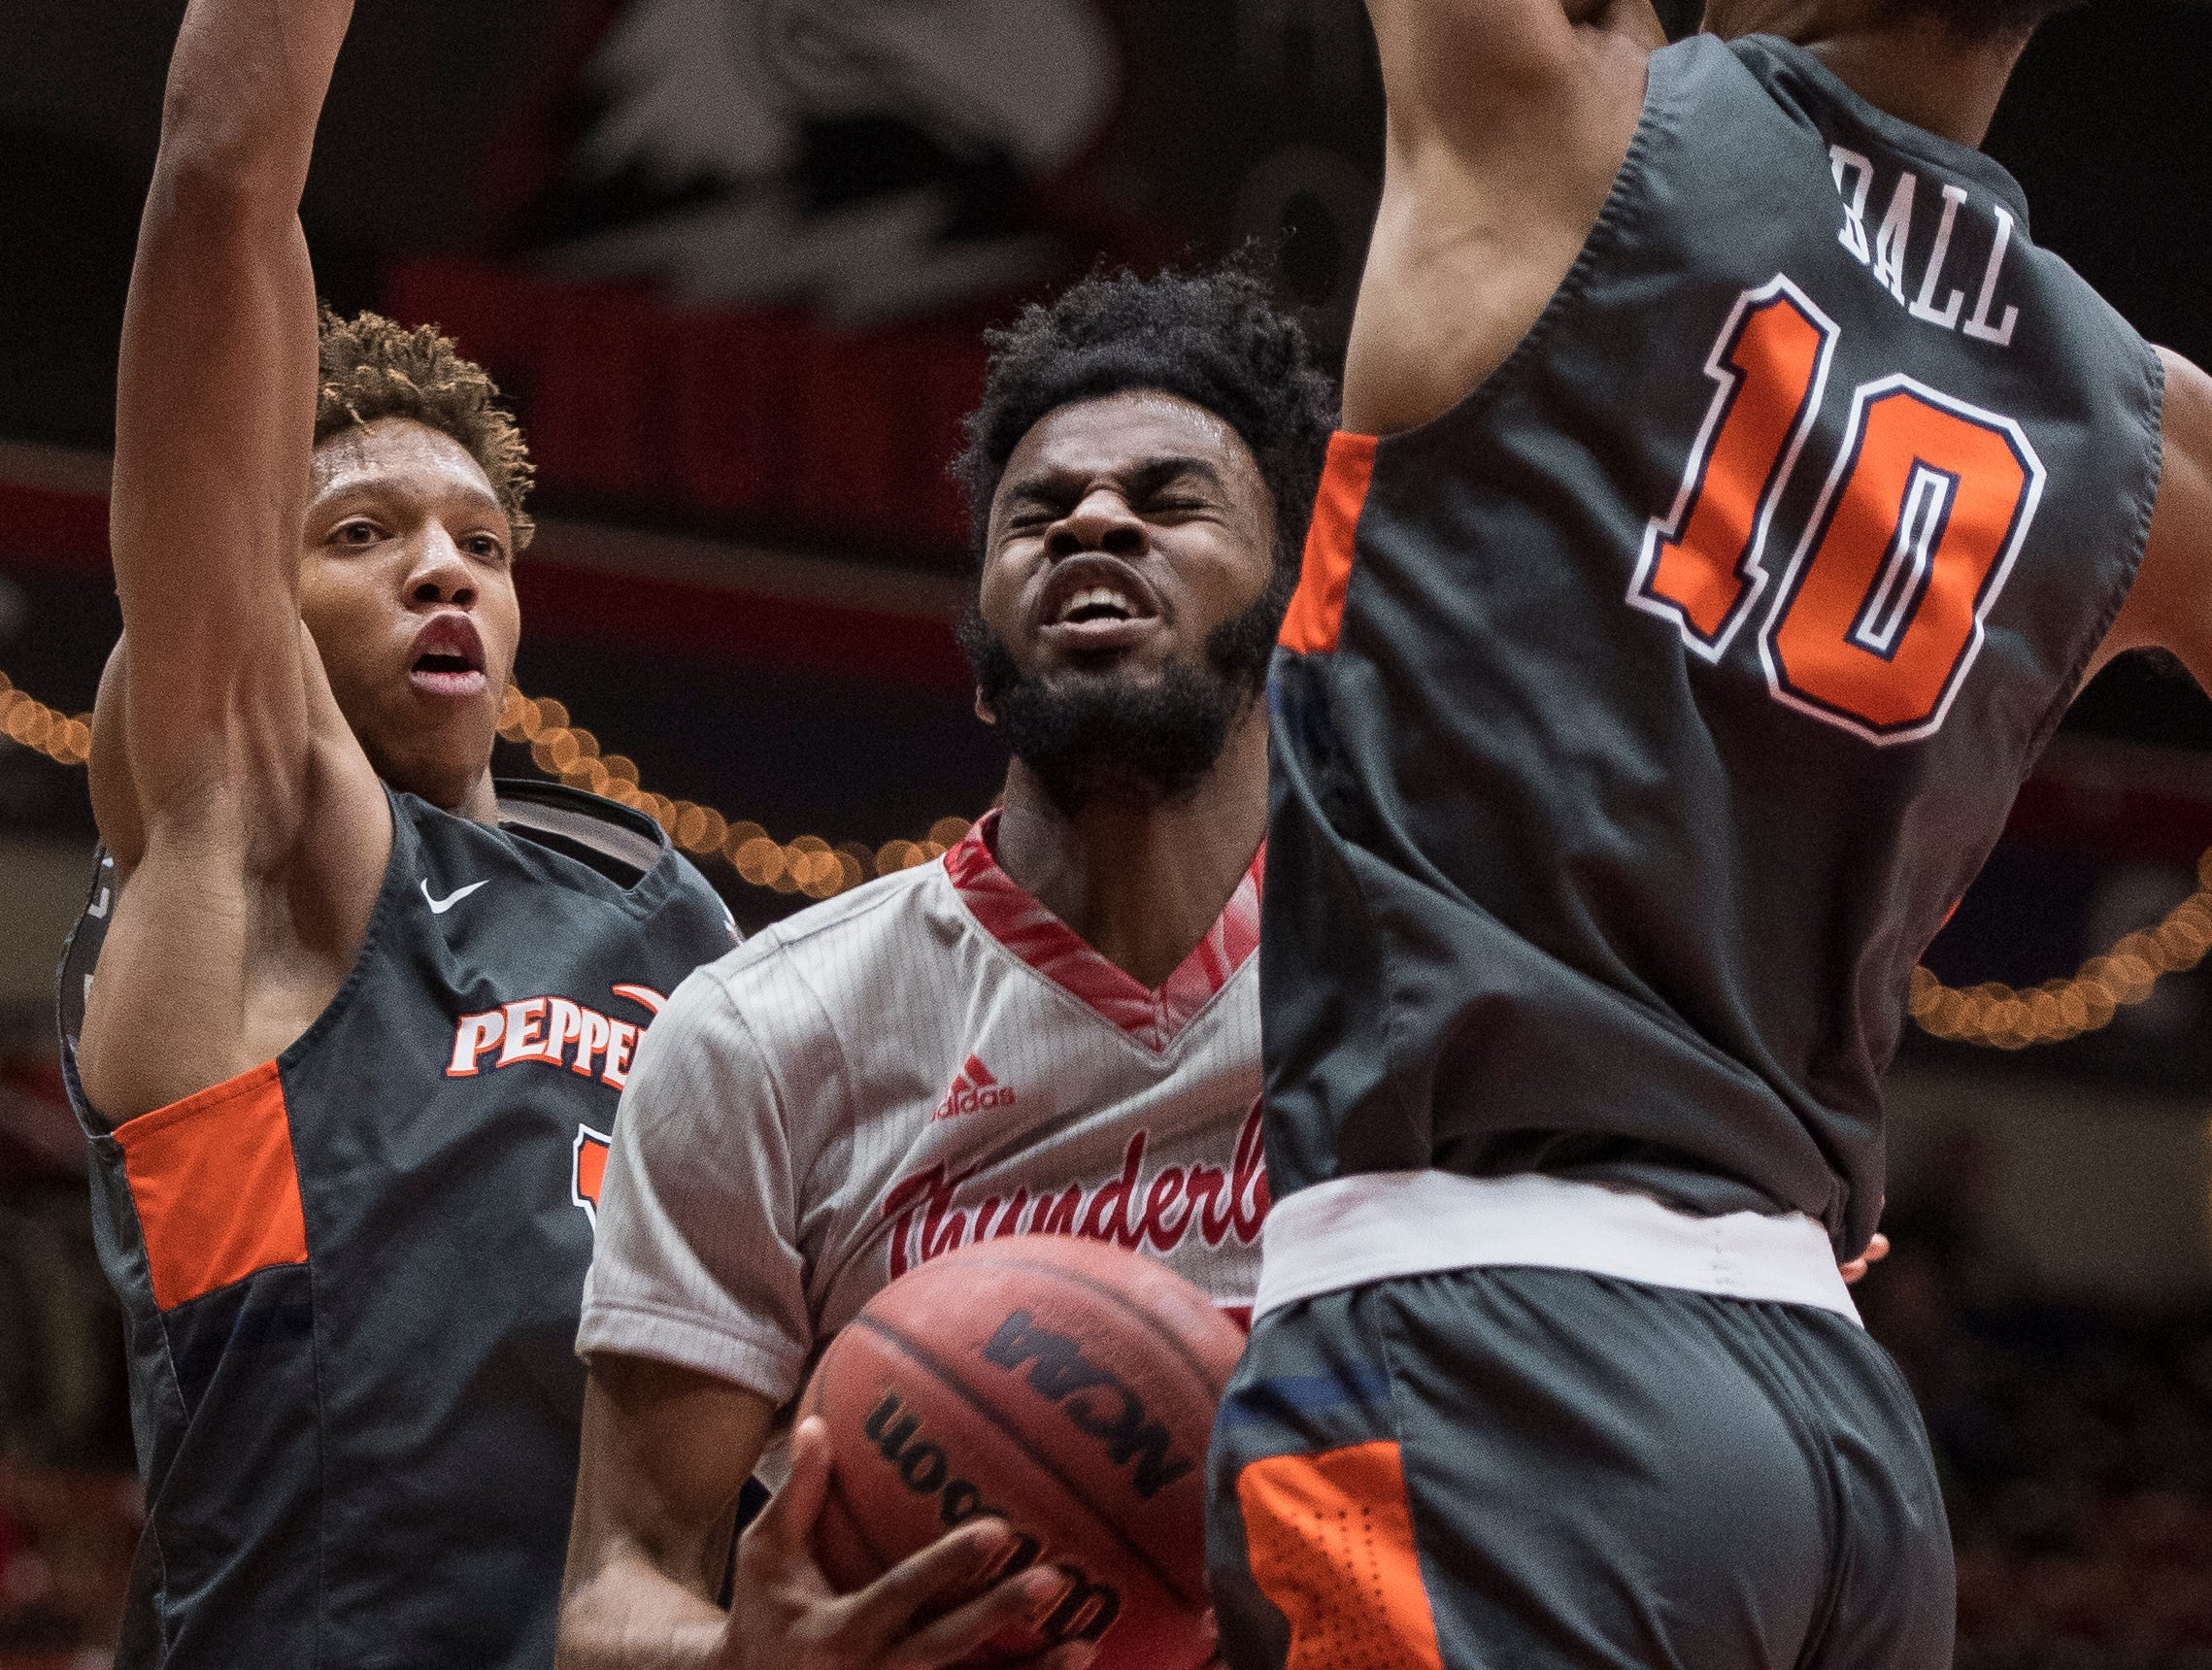 Southern Utah University junior Cameron Oluyitan (23) squeezes through traffic for an equalizing basket late in the game against Pepperdine University in the America First Event Center Saturday, December 15, 2018. SUU won in overtime, 78-69.